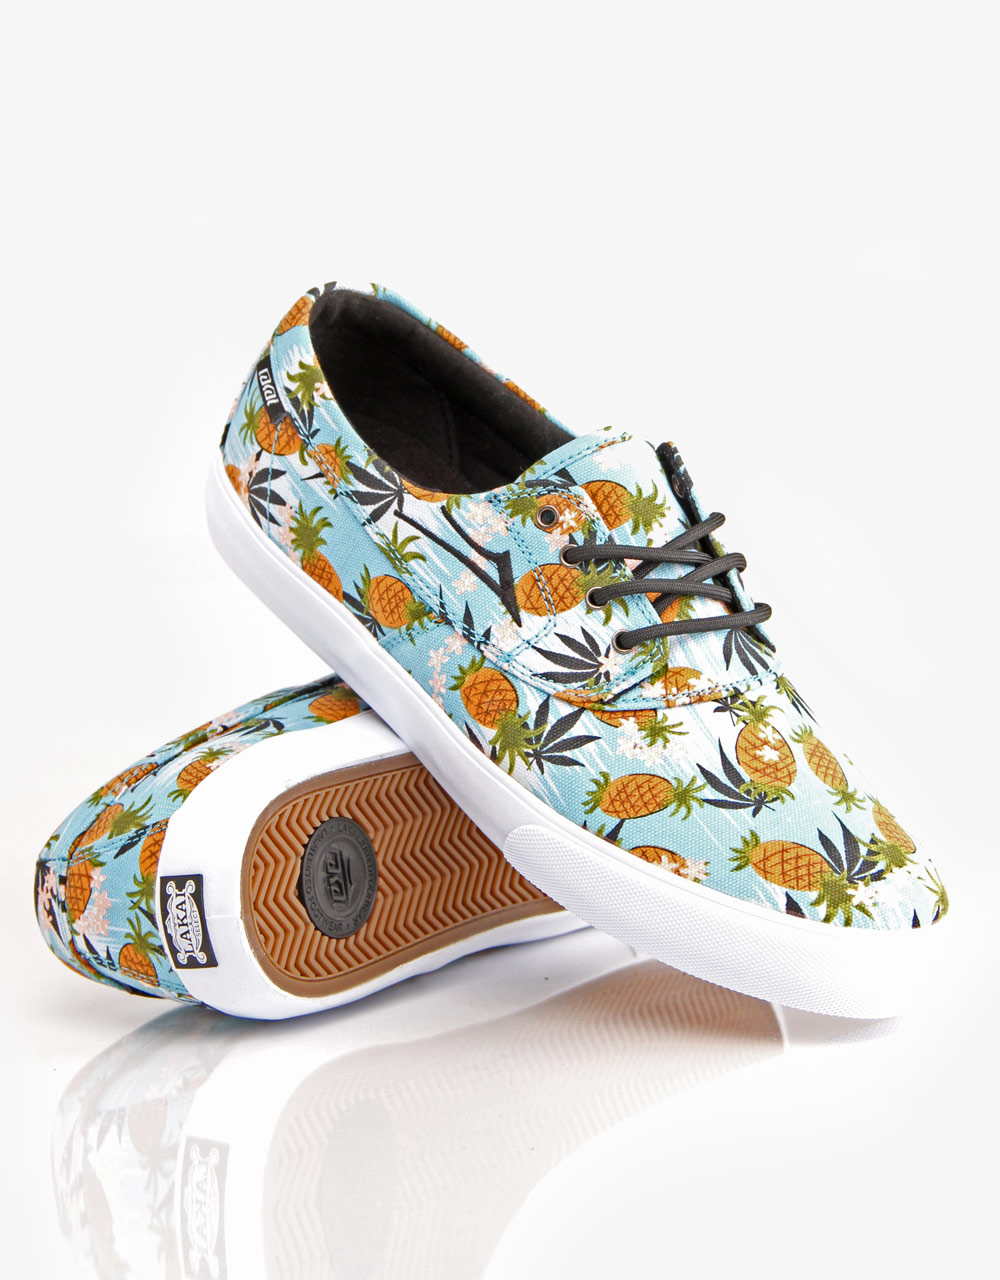 Lakai Shoes Camby x FTC Pineapple Kush Sky Canvas US SIZE FREE POST New Skateboard Sneakers